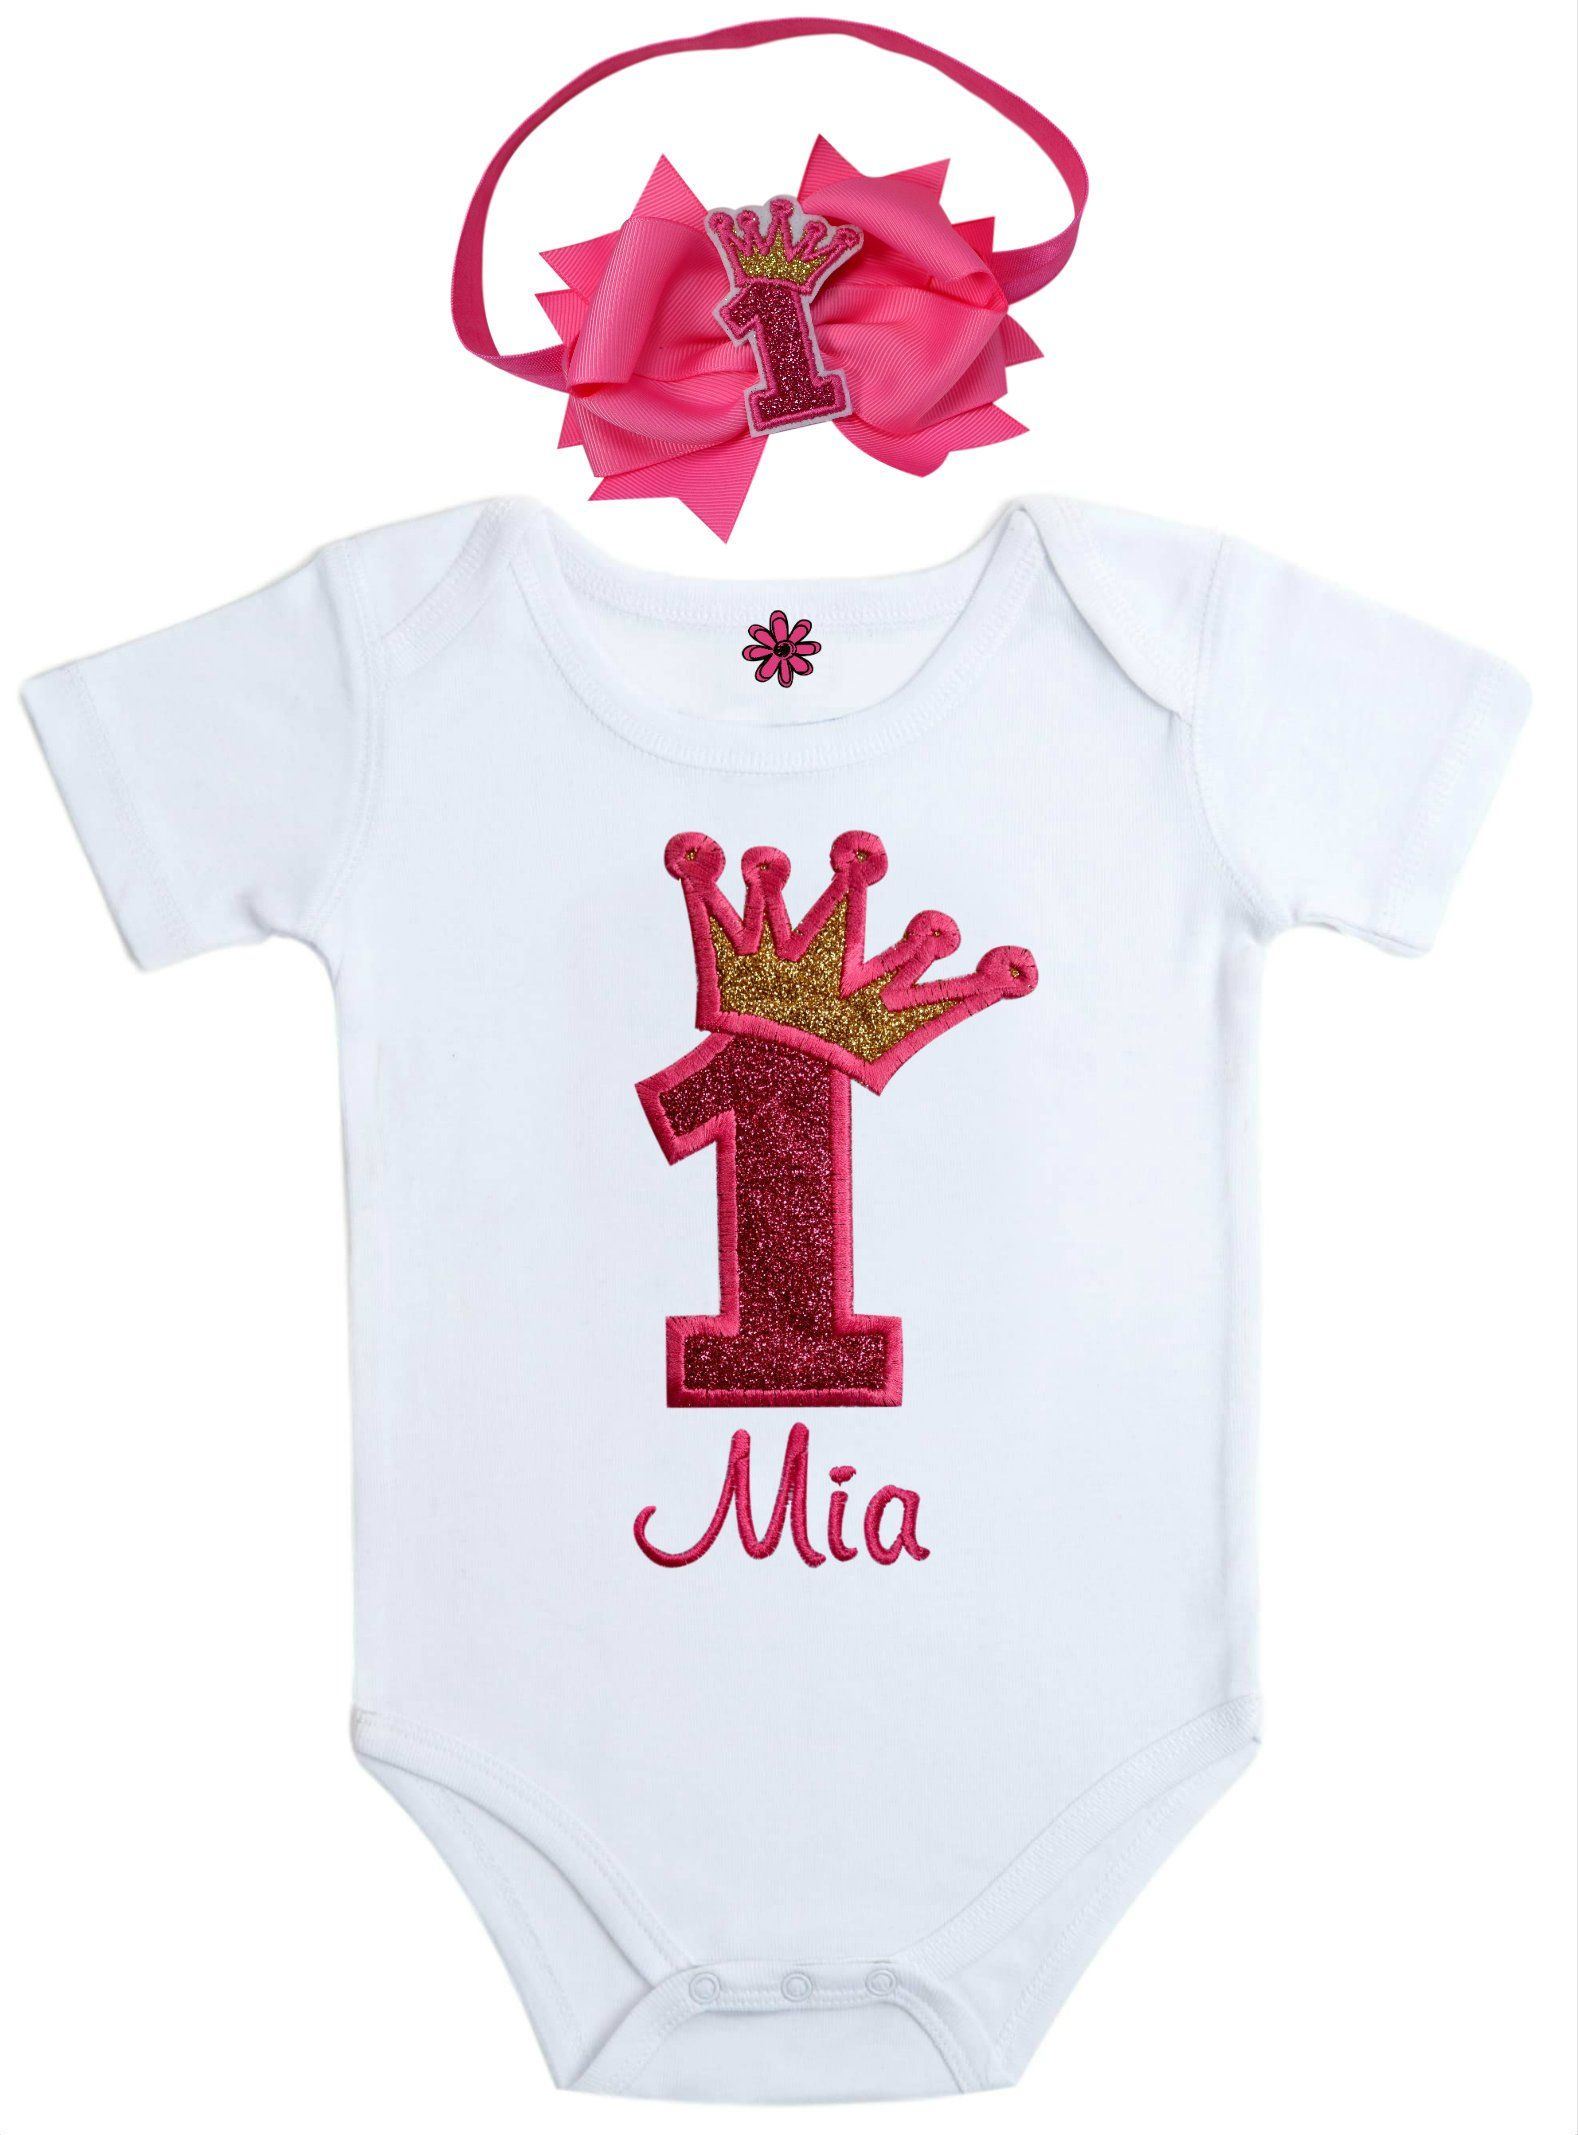 e8b2dbed9 Funny Girl Designs First Birthday Outfit Onesie for Girls Sparkling Glitter  Crown with Personalized Name Includes